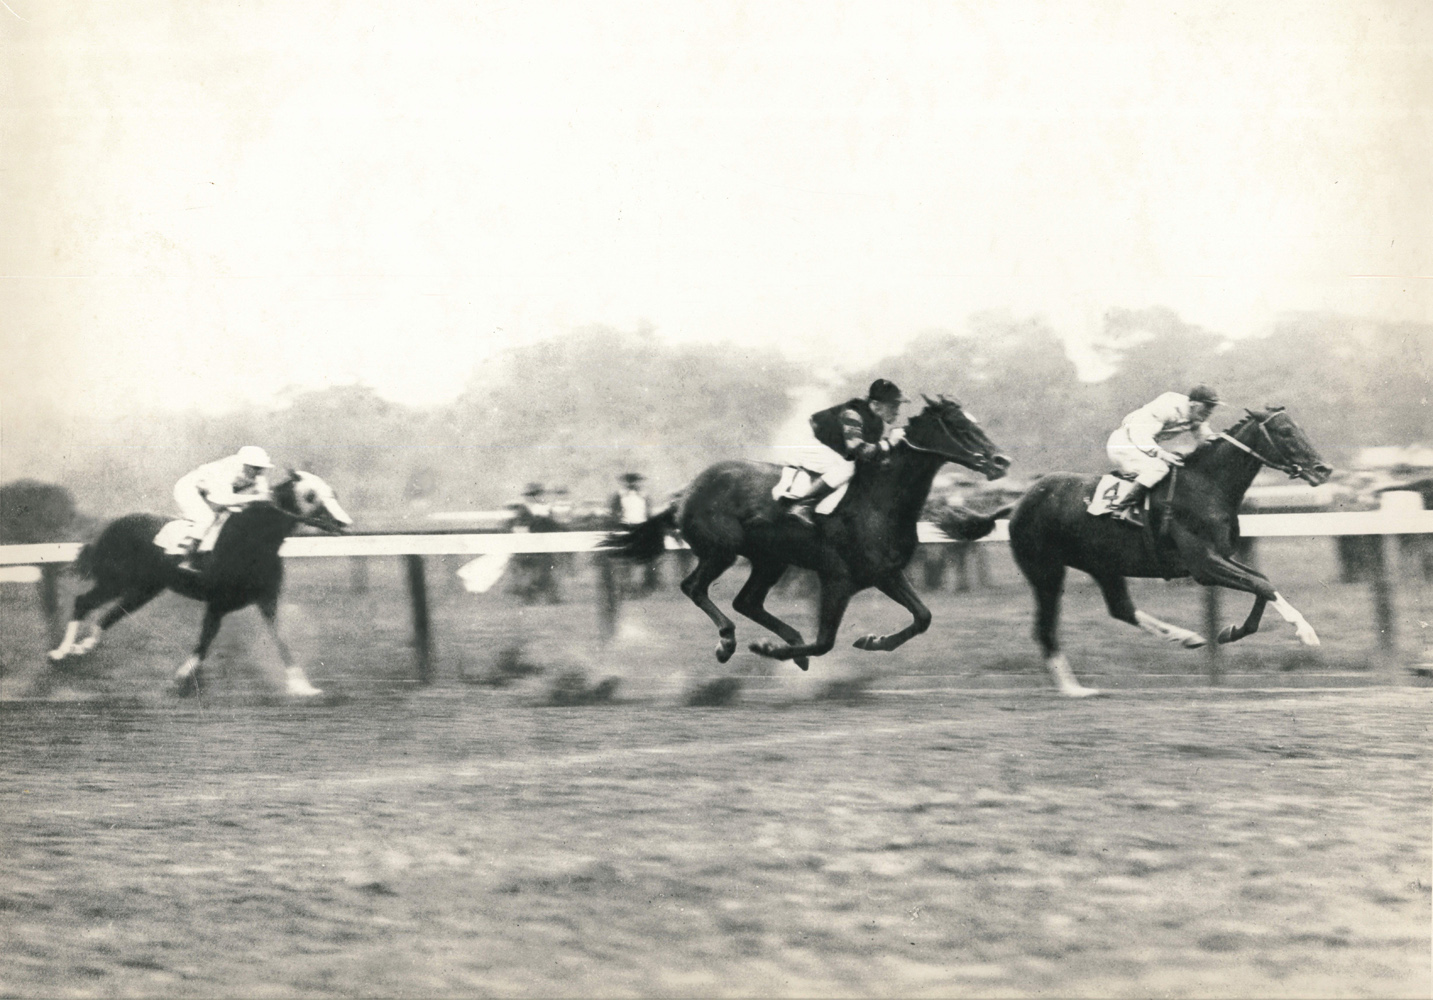 Willie Knapp and Upset defeating John Loftus and Man o' War in the 1919 Sanford Memorial at Saratoga (C. C. Cook/Museum Collection)